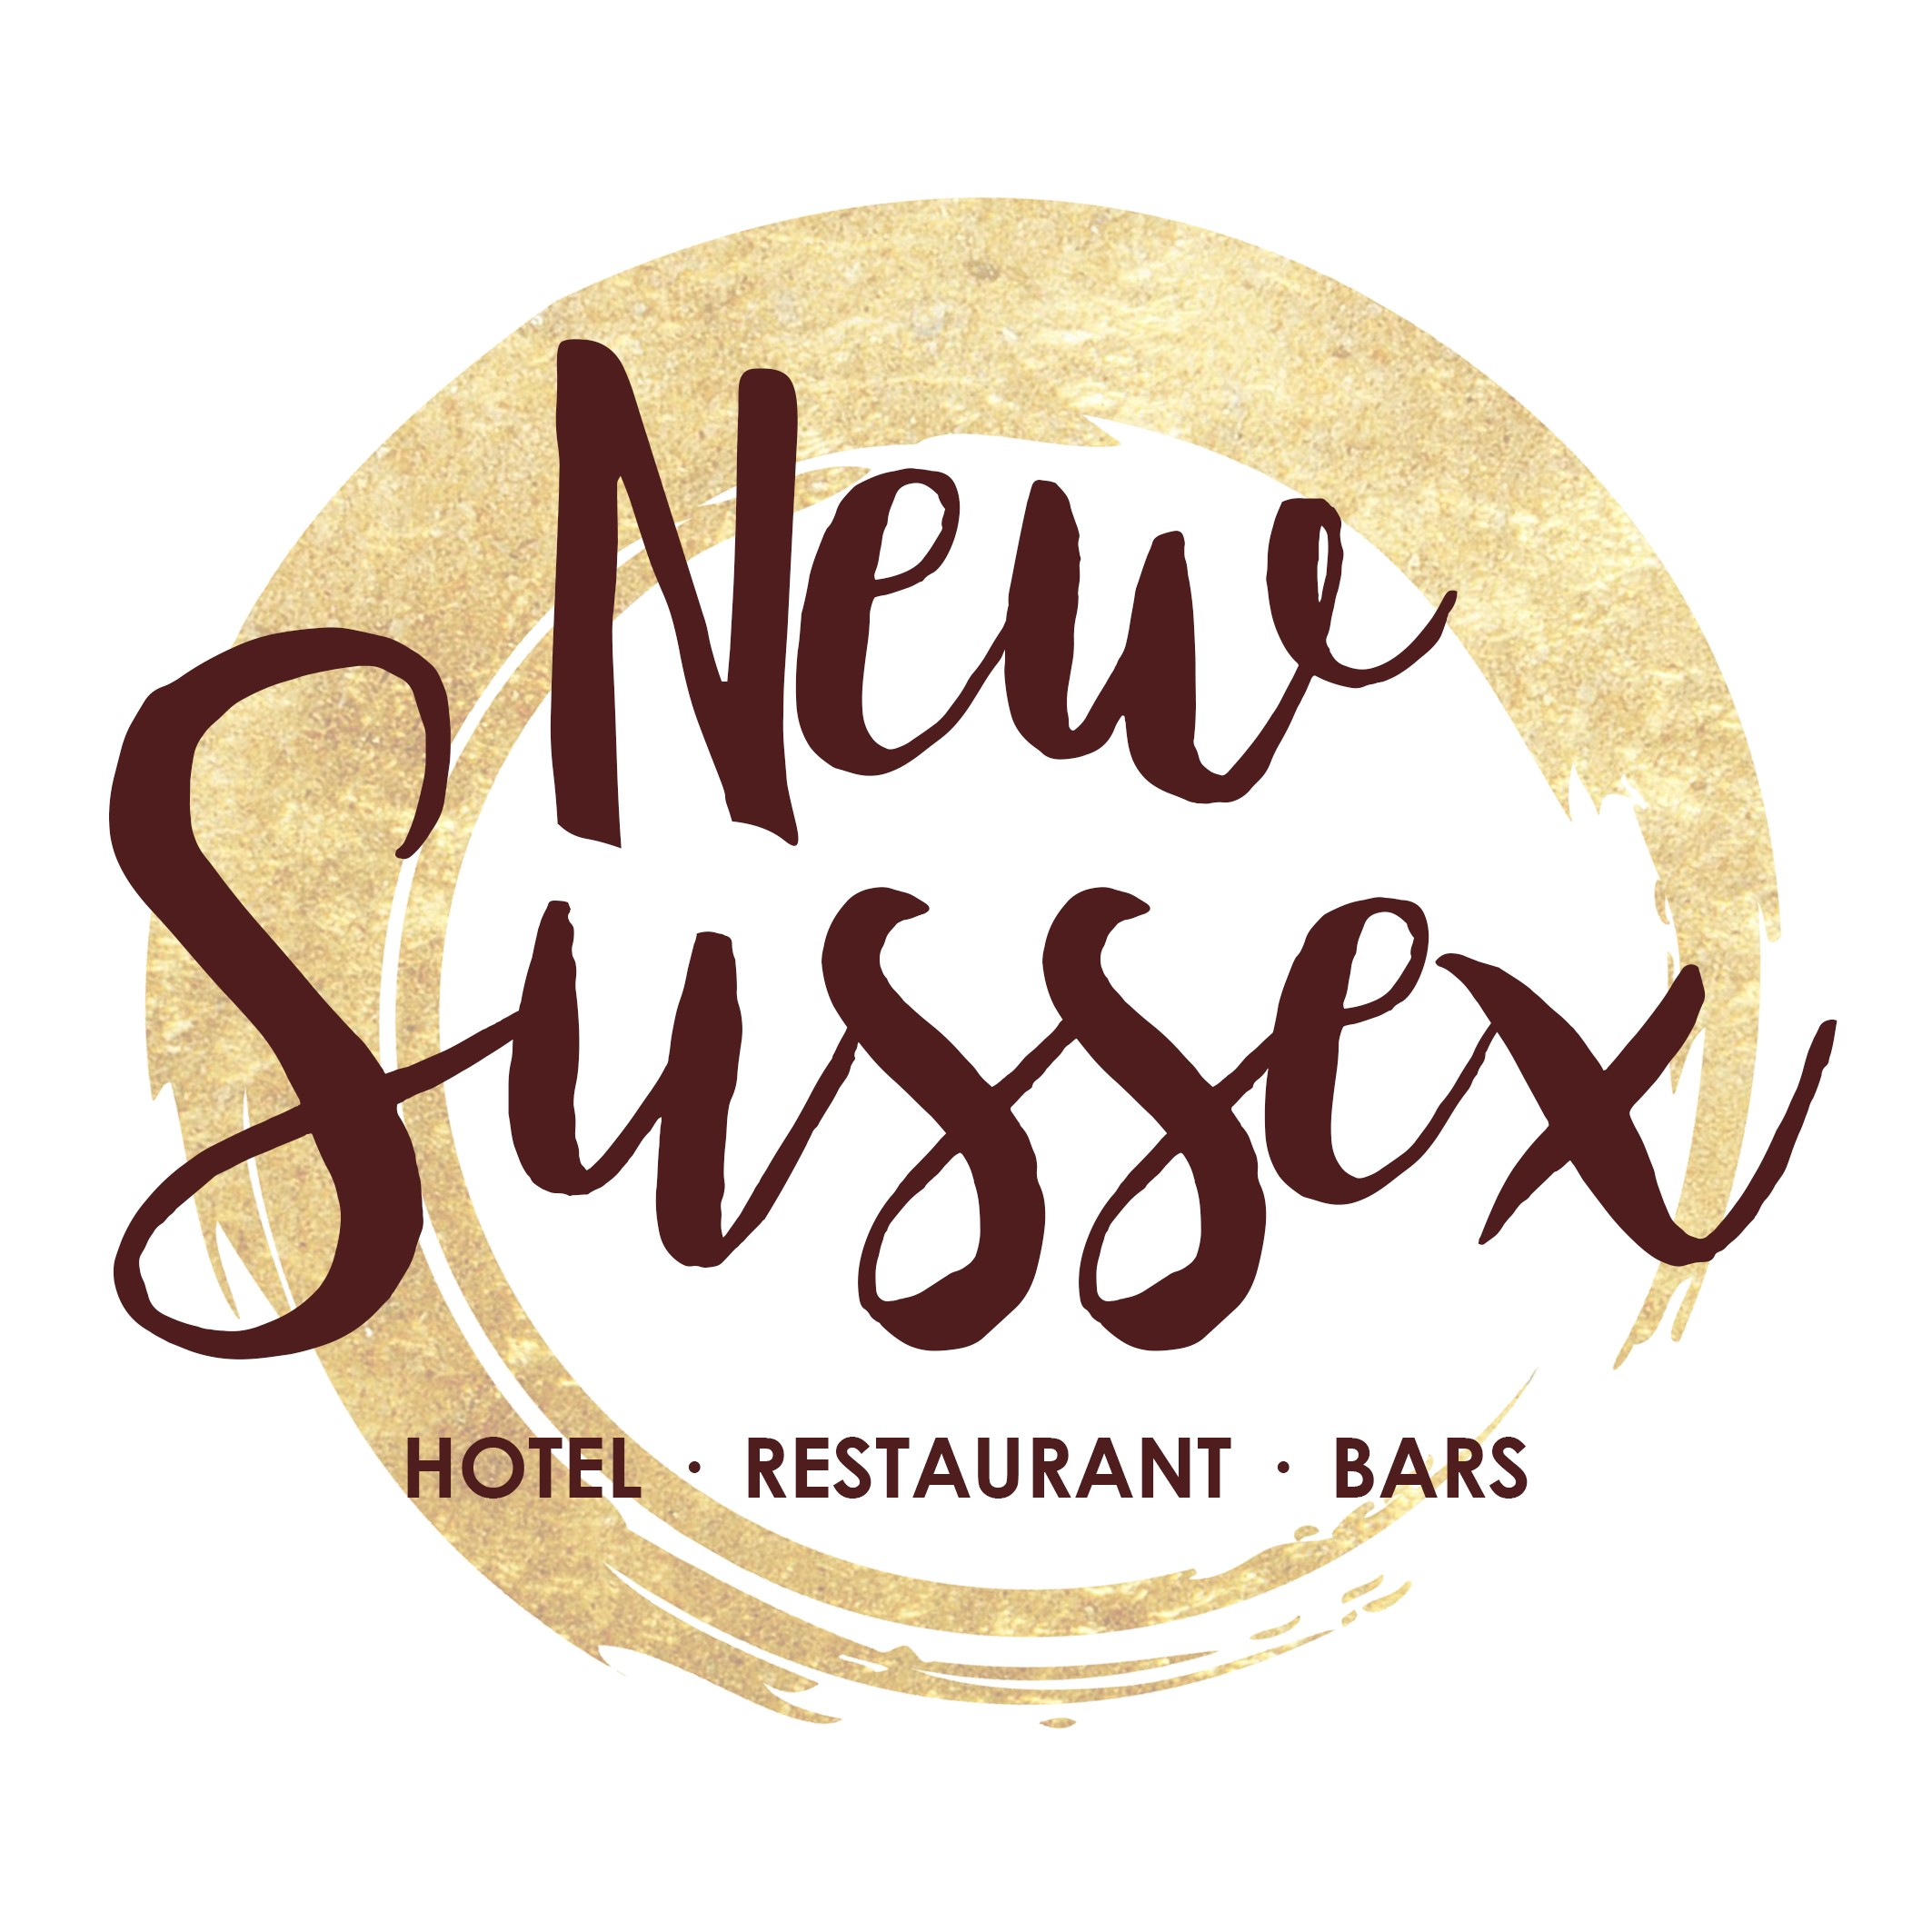 The New Sussex Hotel